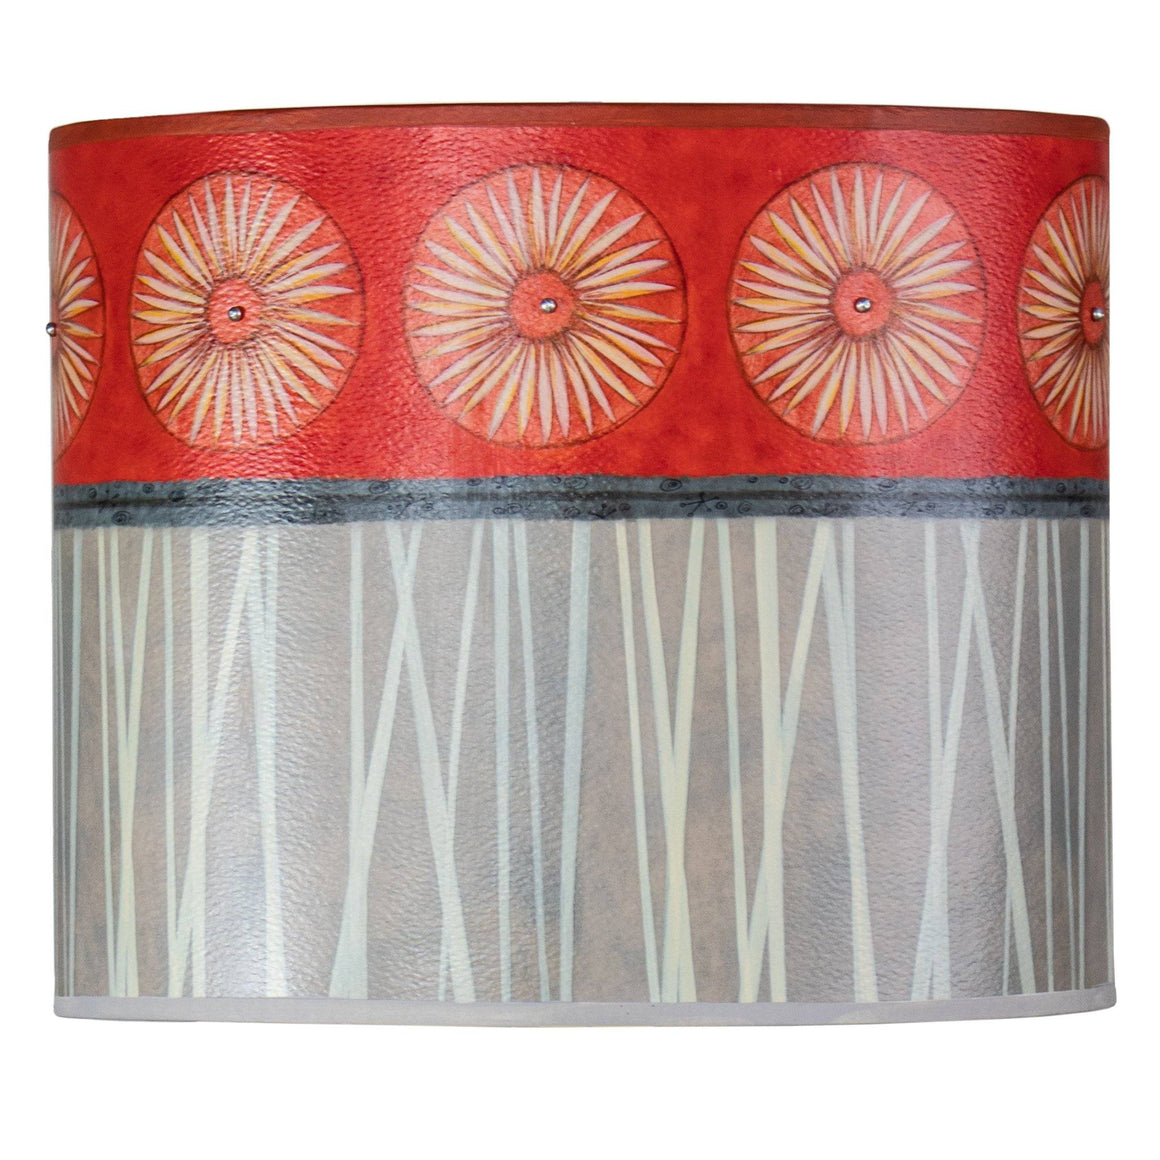 Large Oval Drum Lamp Shade in Tang